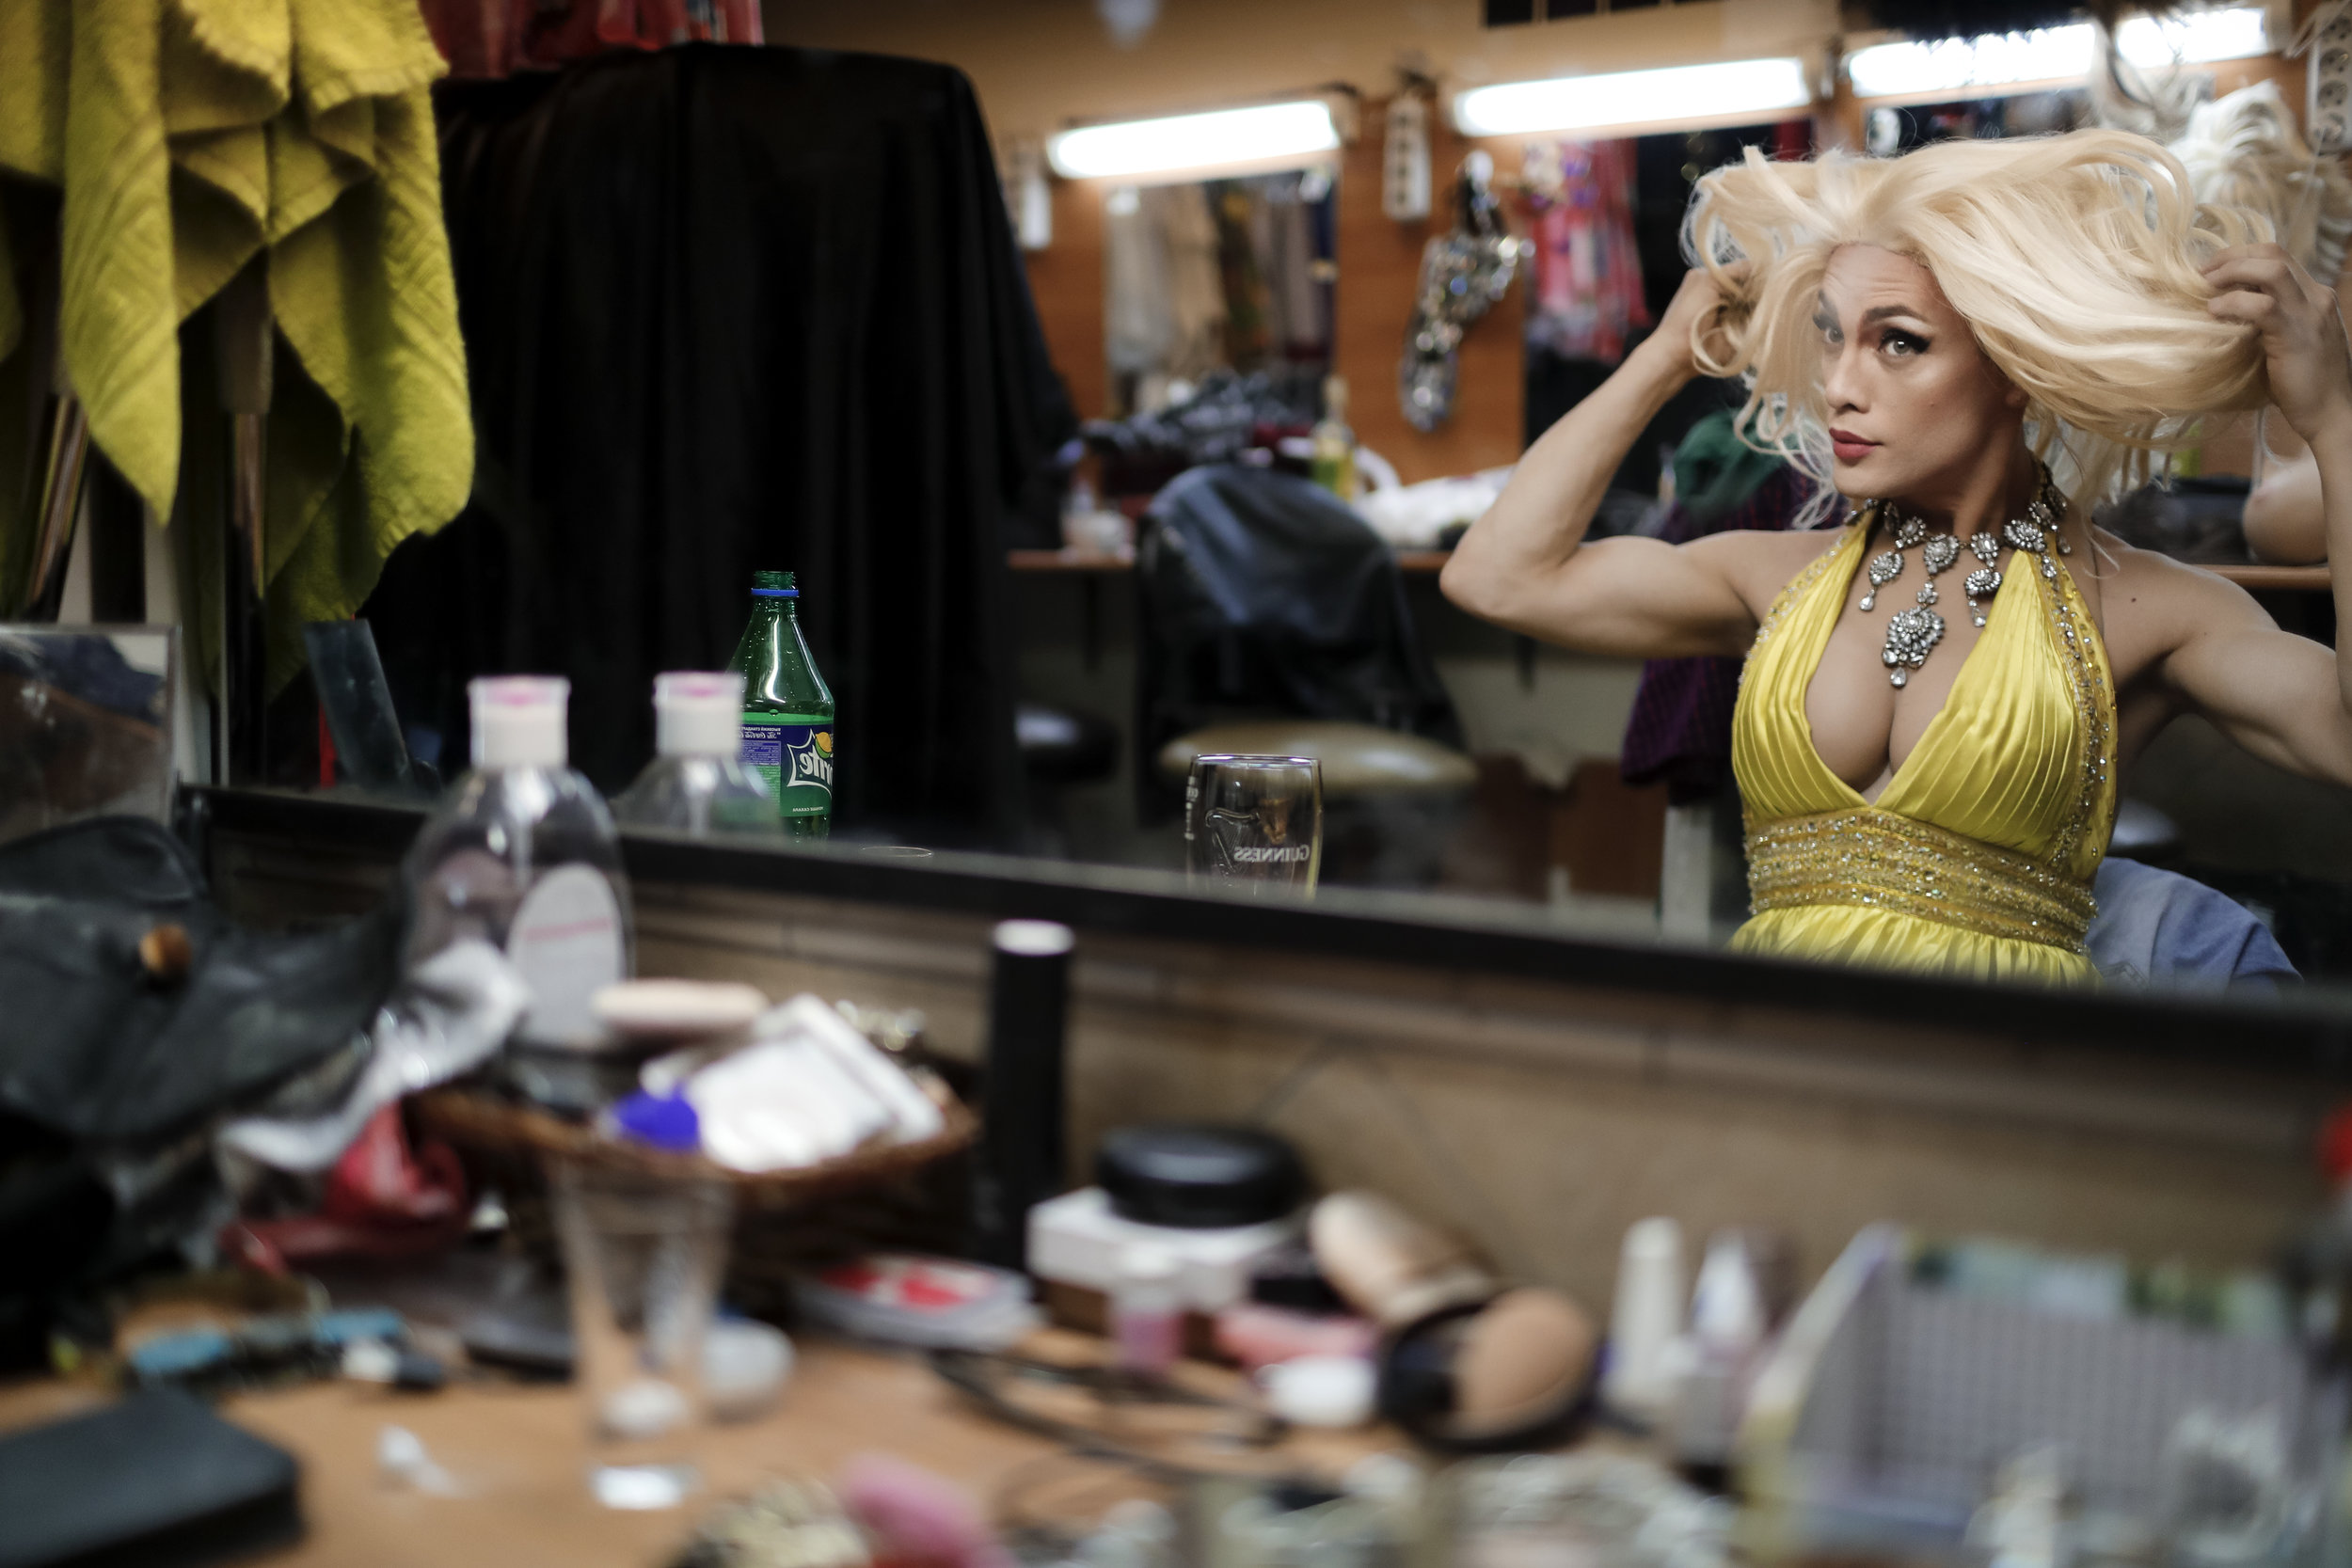 Andrei, who uses the stage name Star Vasha, checks a wig at the Fame gay club, during the 2018 soccer World Cup in Yekaterinburg, Russia on Sunday, June 24, 2018 (AP Photo/Natacha Pisarenko)